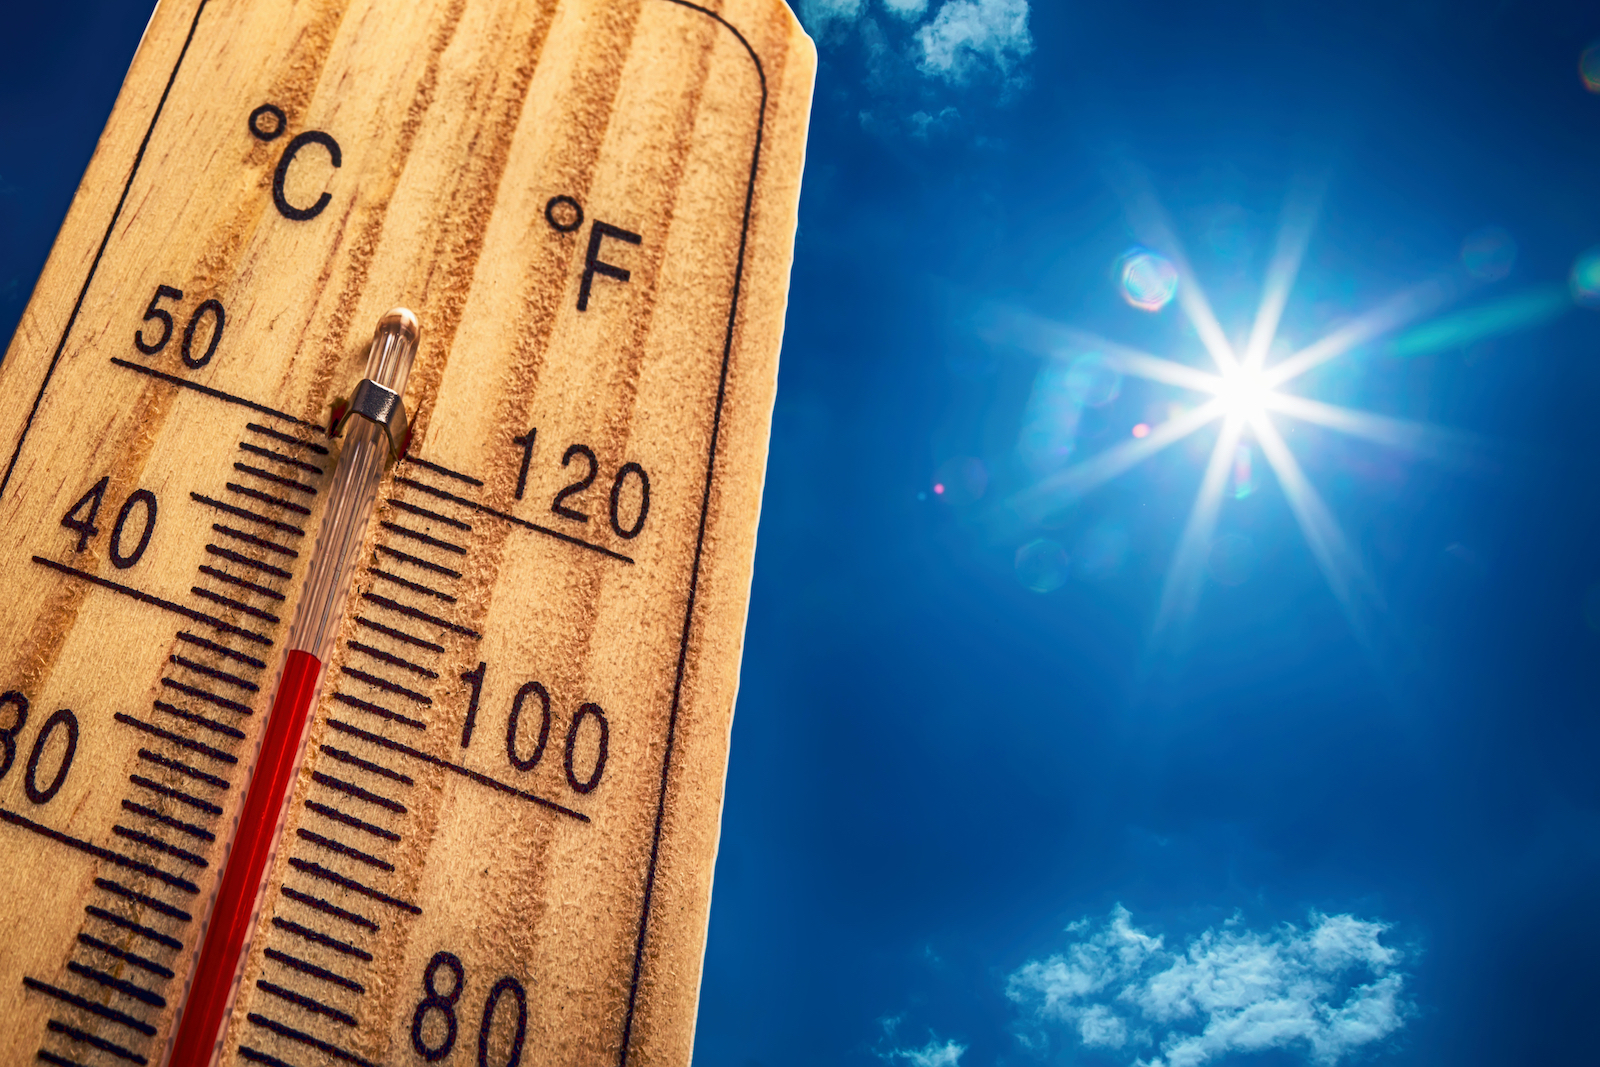 A new report from the National Oceanic and Atmospheric Administration (NOAA) has revealed that last month was the hottest May in the continental United States since weather was first recorded 124 years ago.